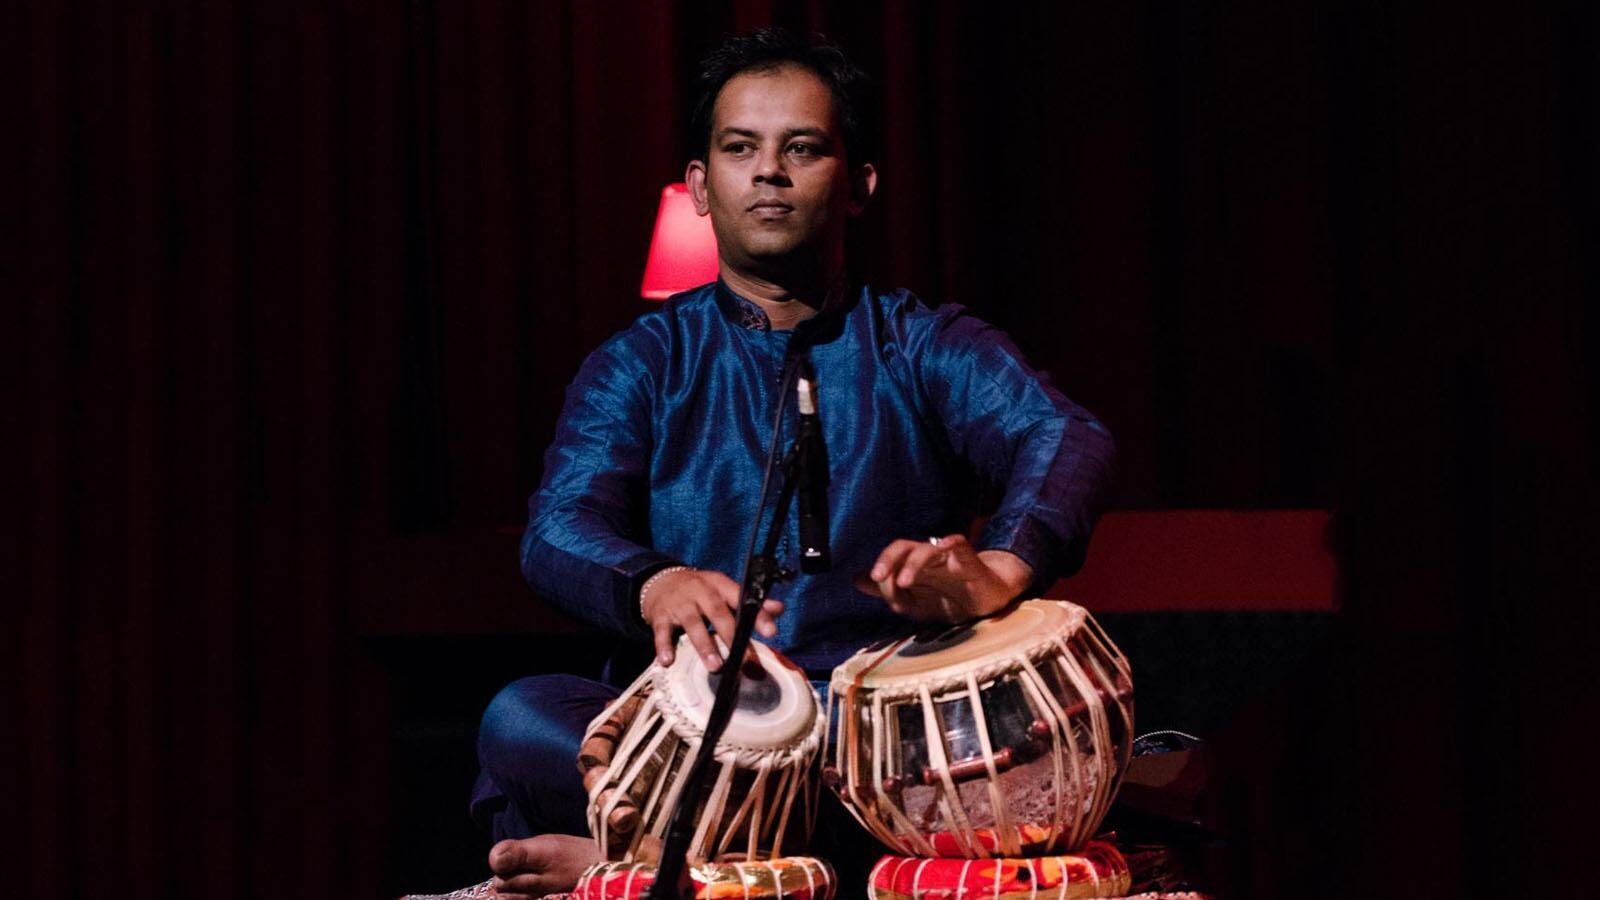 Ustad Shahbaz Hussain, tabla player